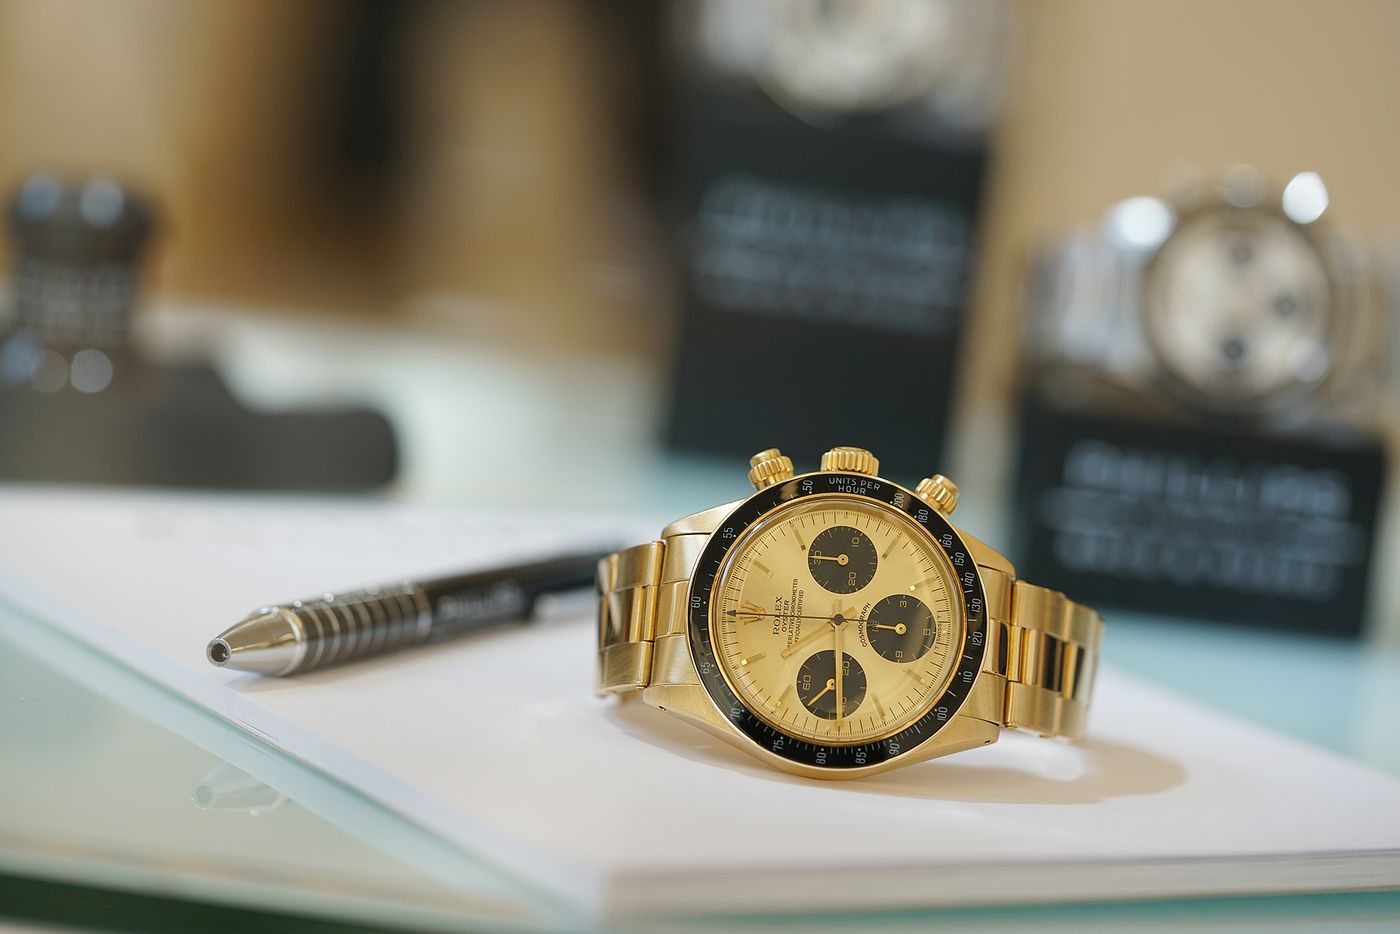 Rolex Patek Phillips Phillips Watches To Host Private Sale Exhibition In